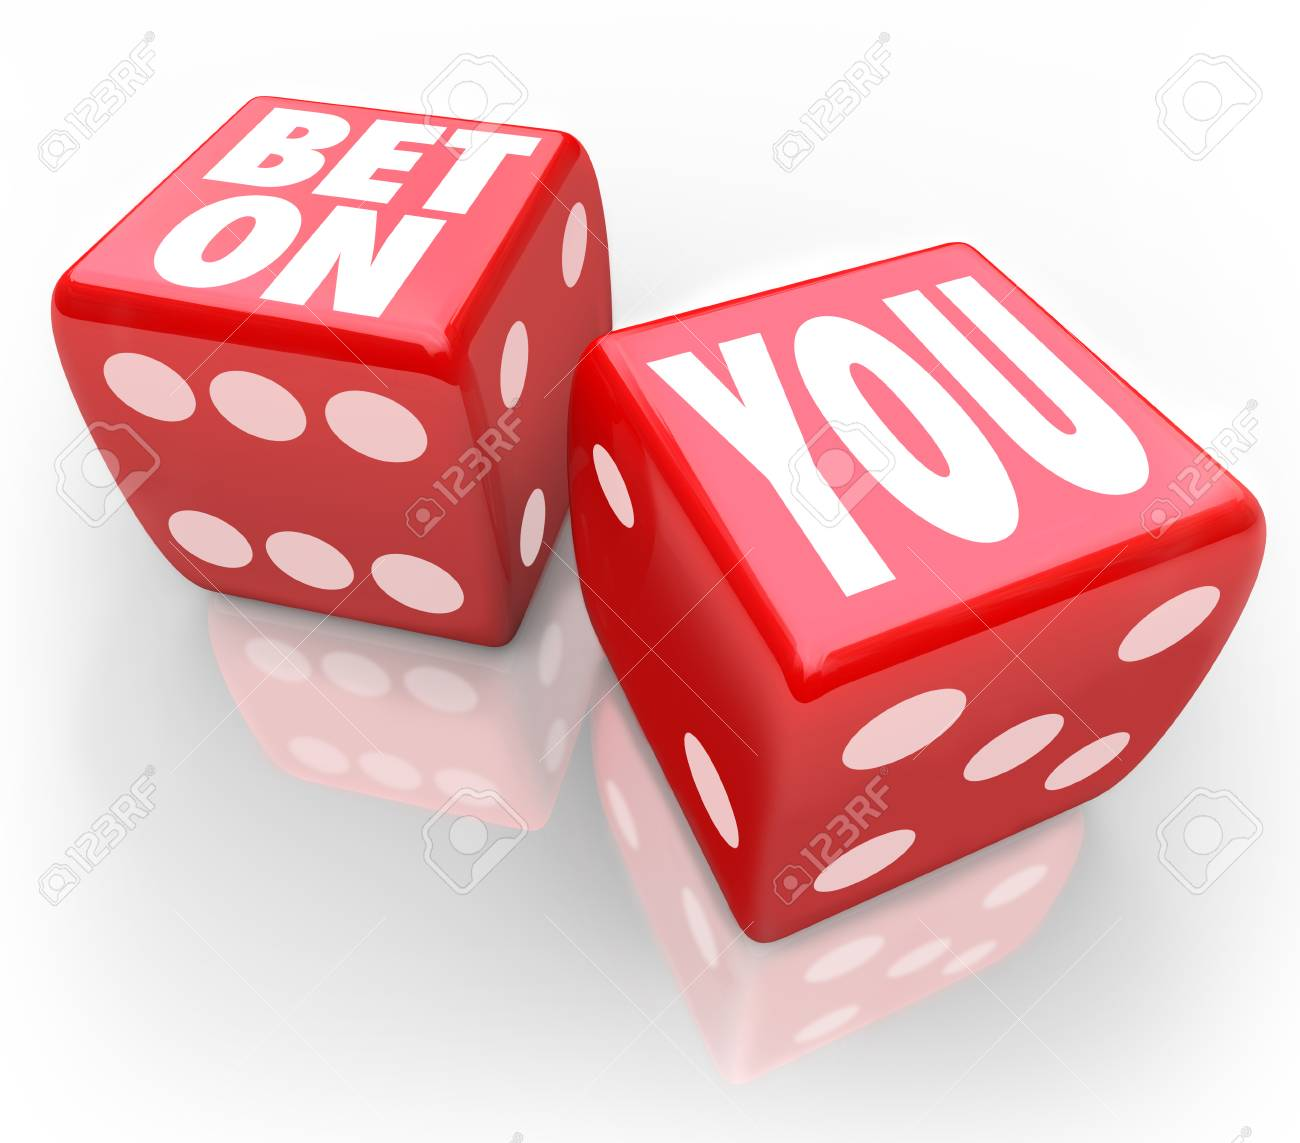 Bet on you how much is 10 bitcoins